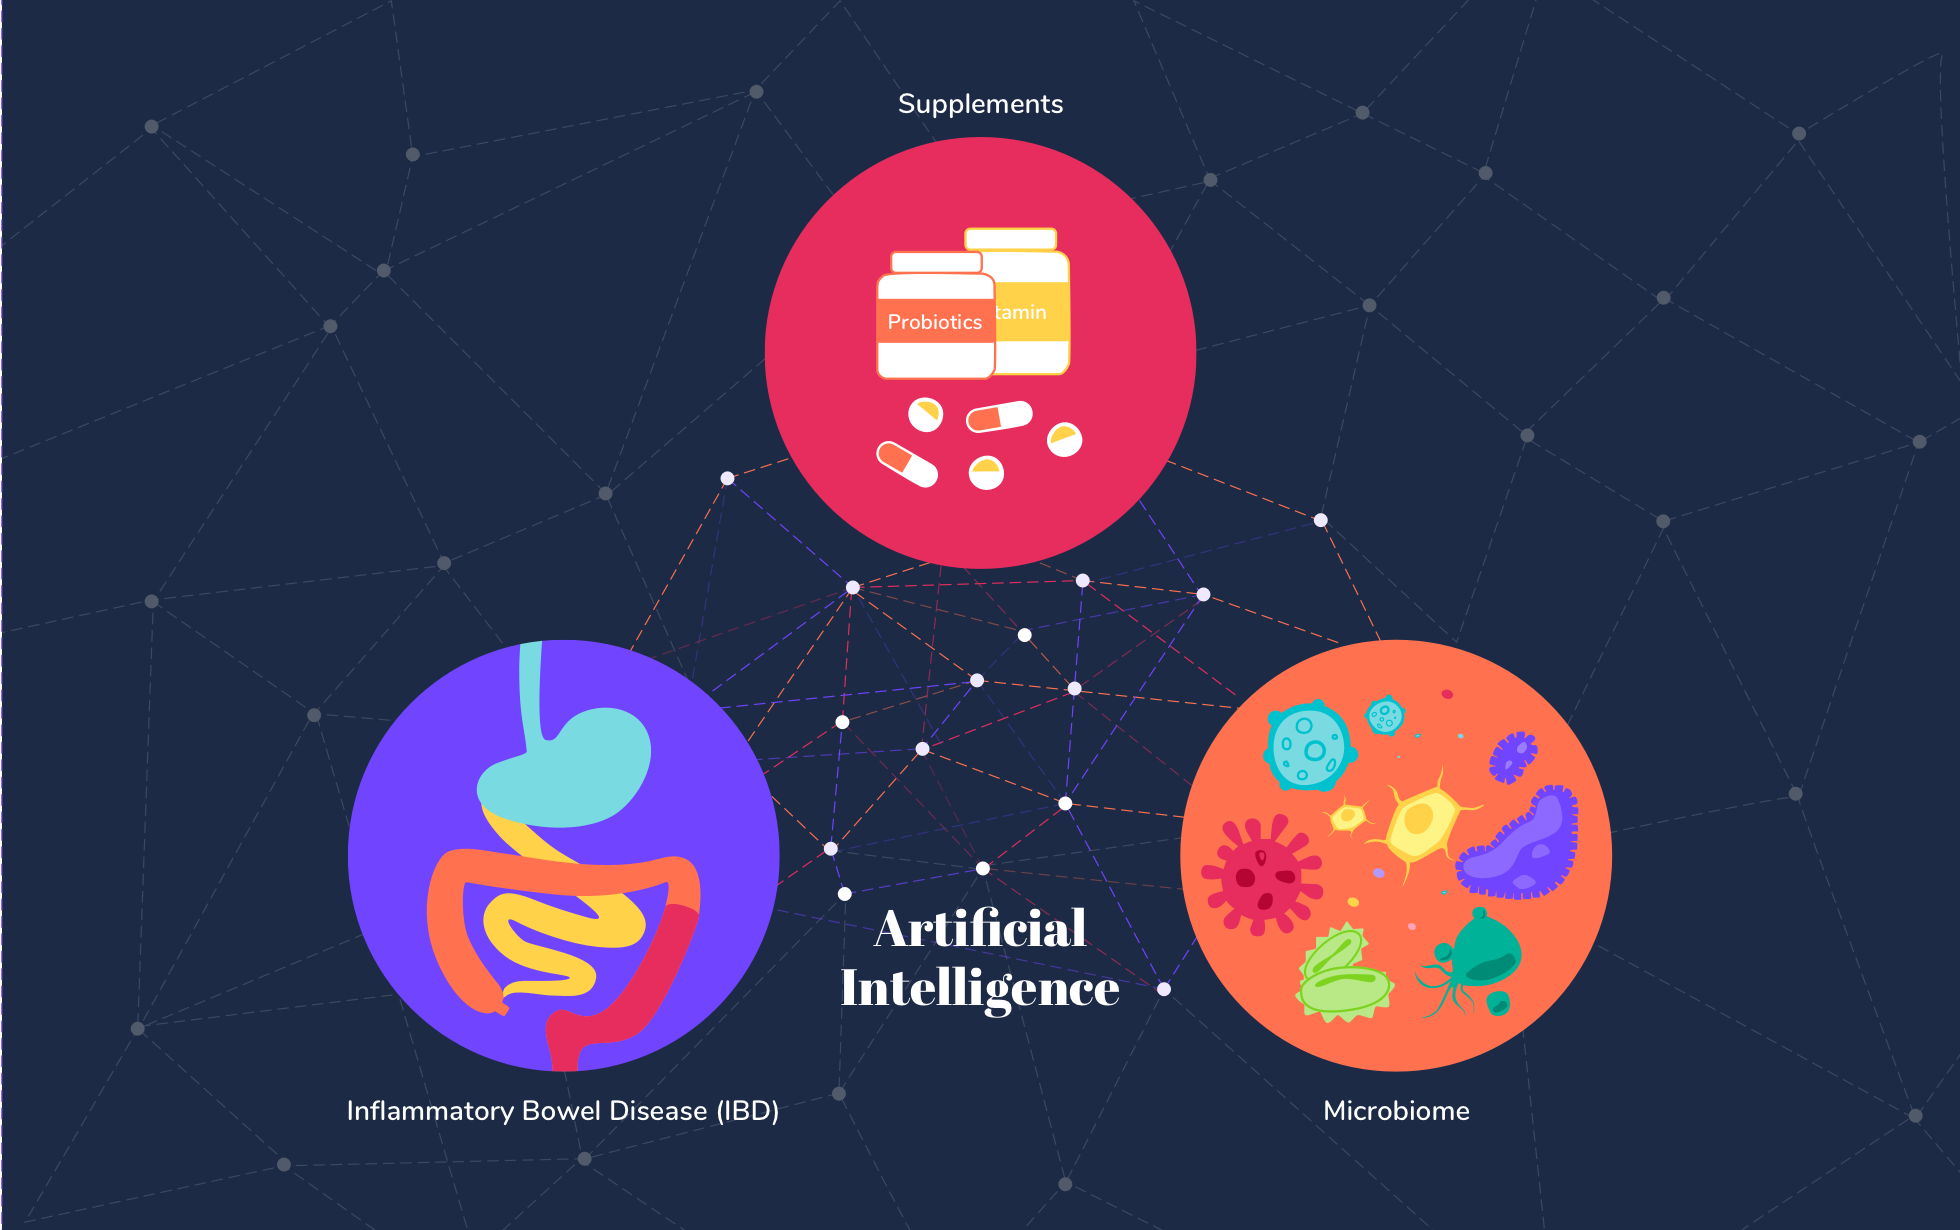 ibd-supplements-microbiome-artificial-intelligence